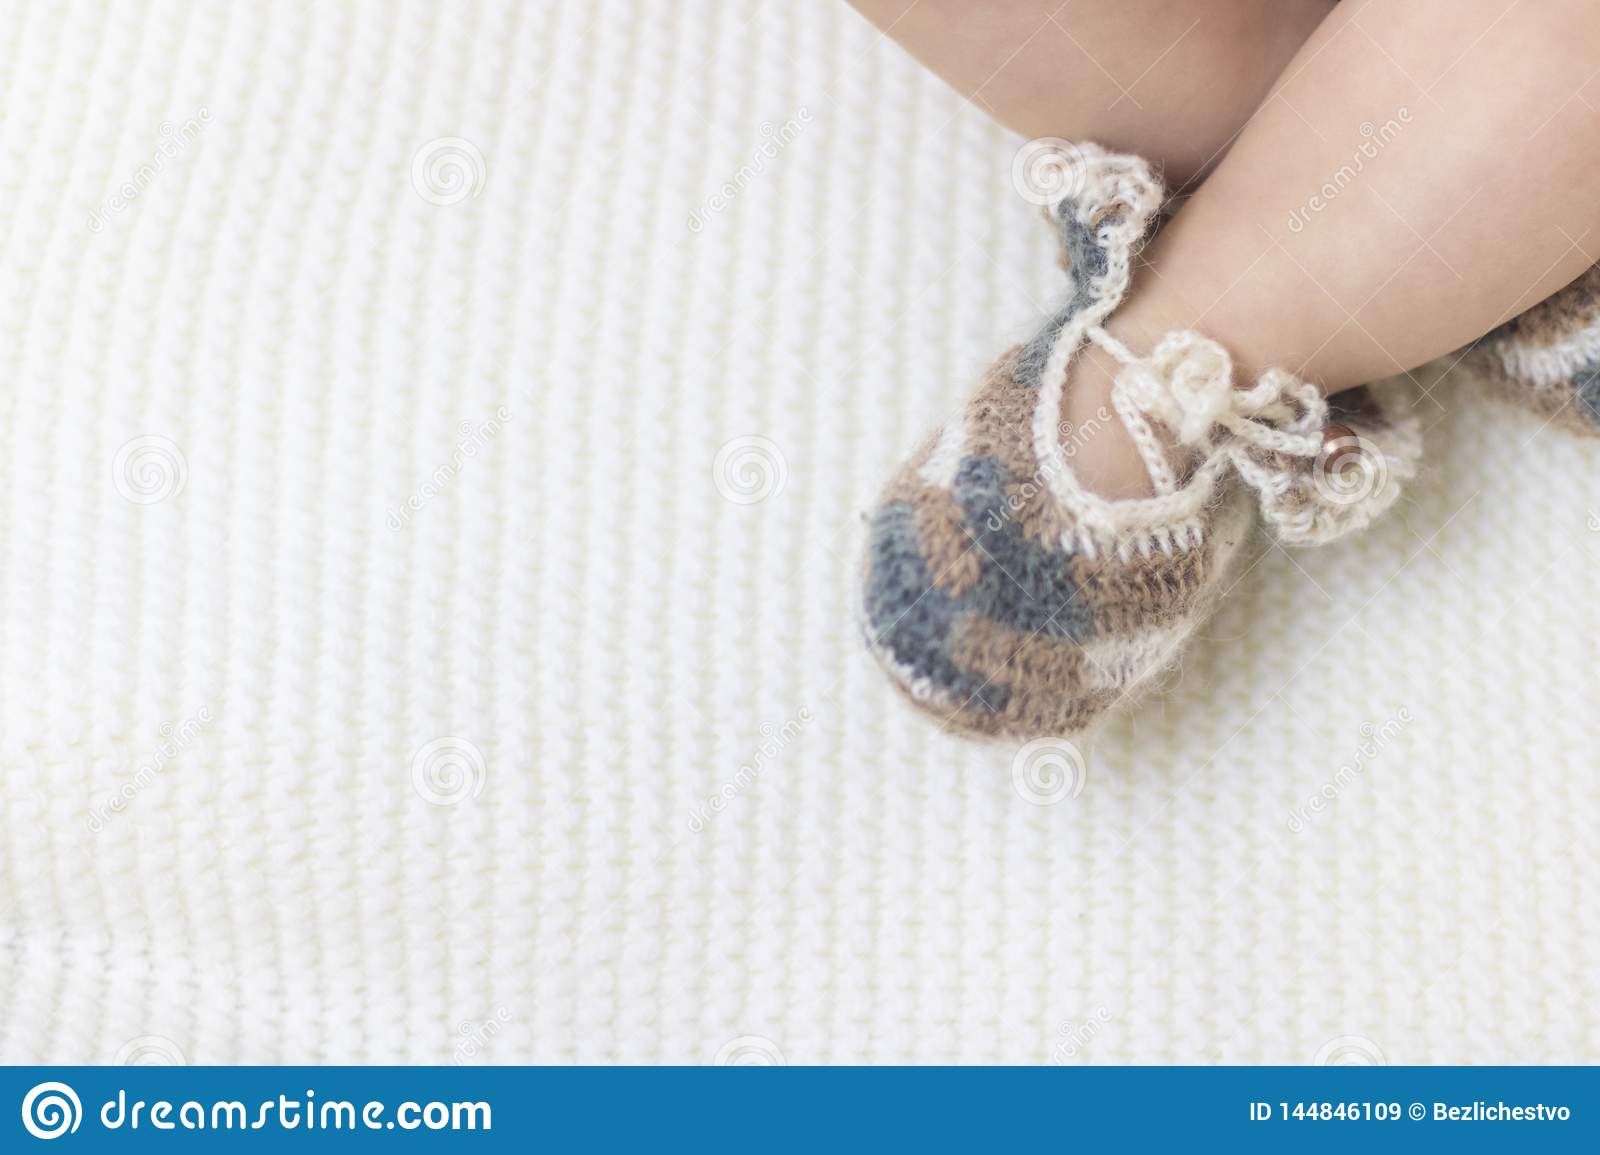 Newborn baby feet close up in wool brown knitted socks booties on a white blanket. The baby is in the crib. In the right corner.